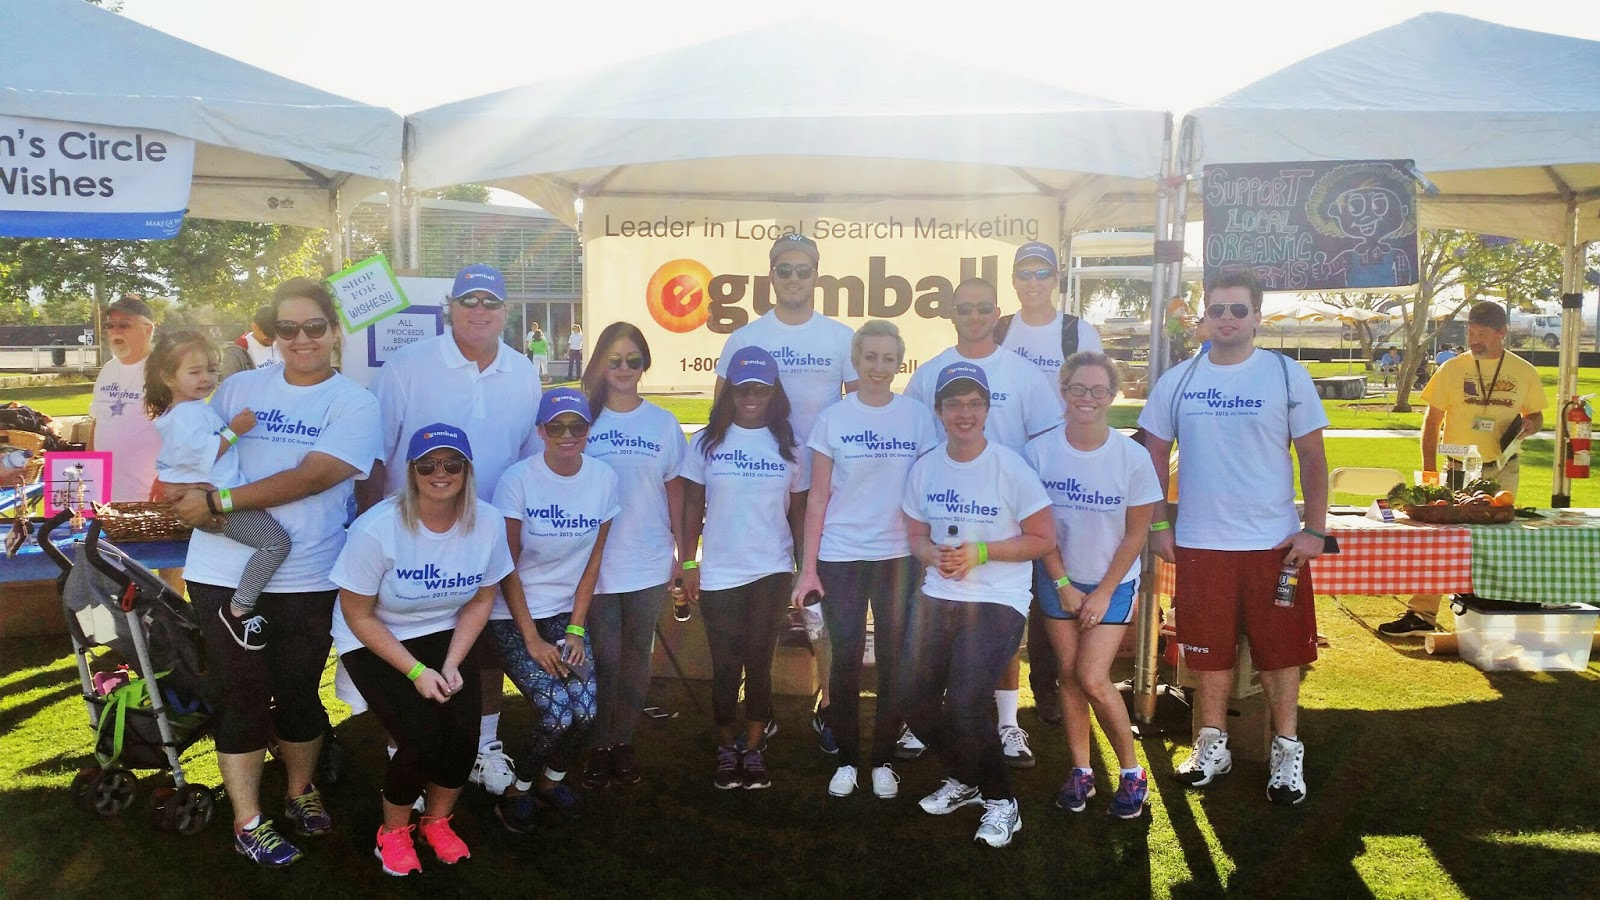 Employees from eGumball, Inc. posing for a photograph in front of their booth at the Make-A-Wish Foundation's Walk for Wishes event.